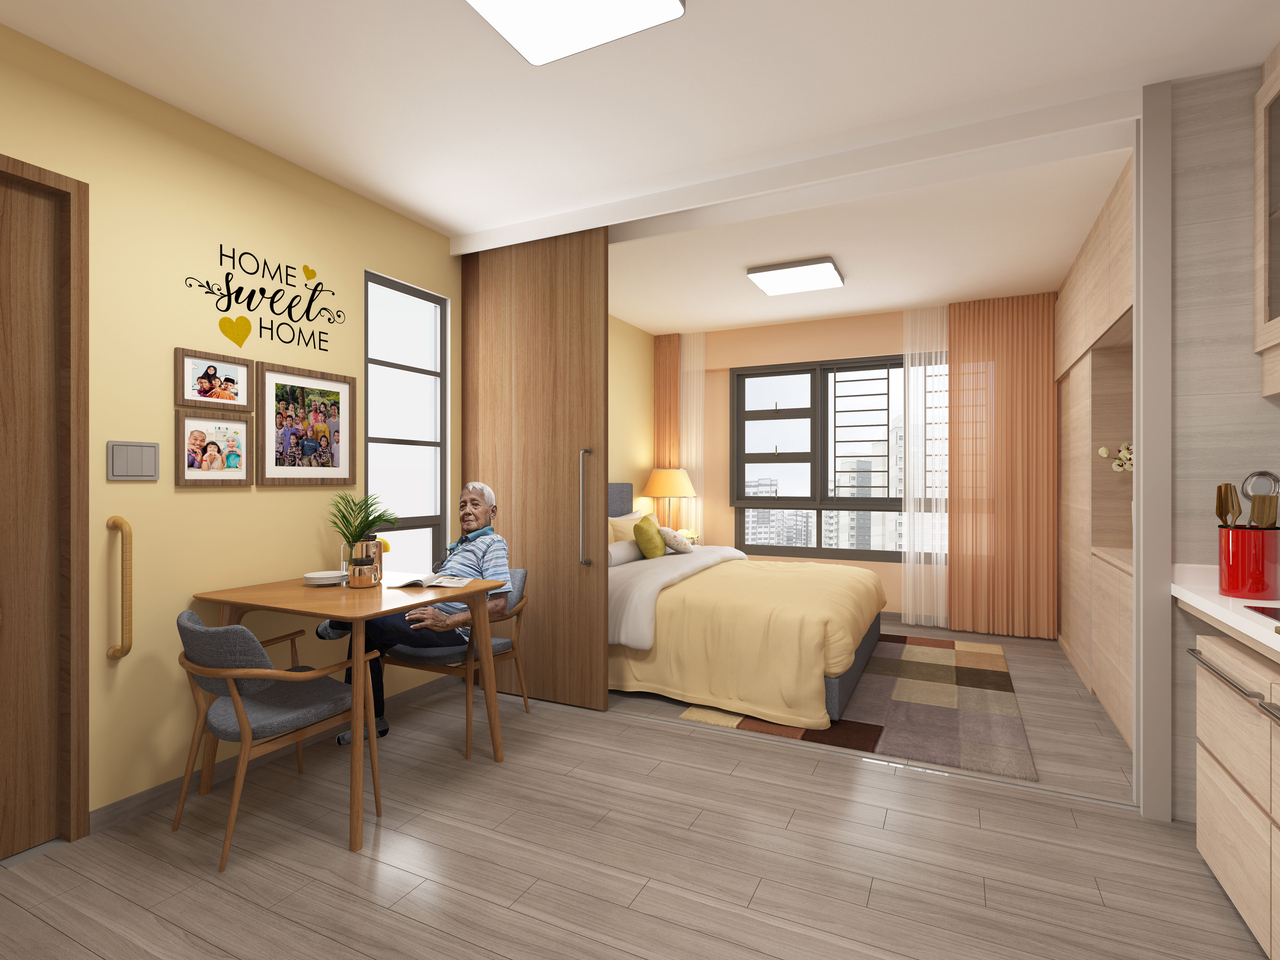 assisted living hdb